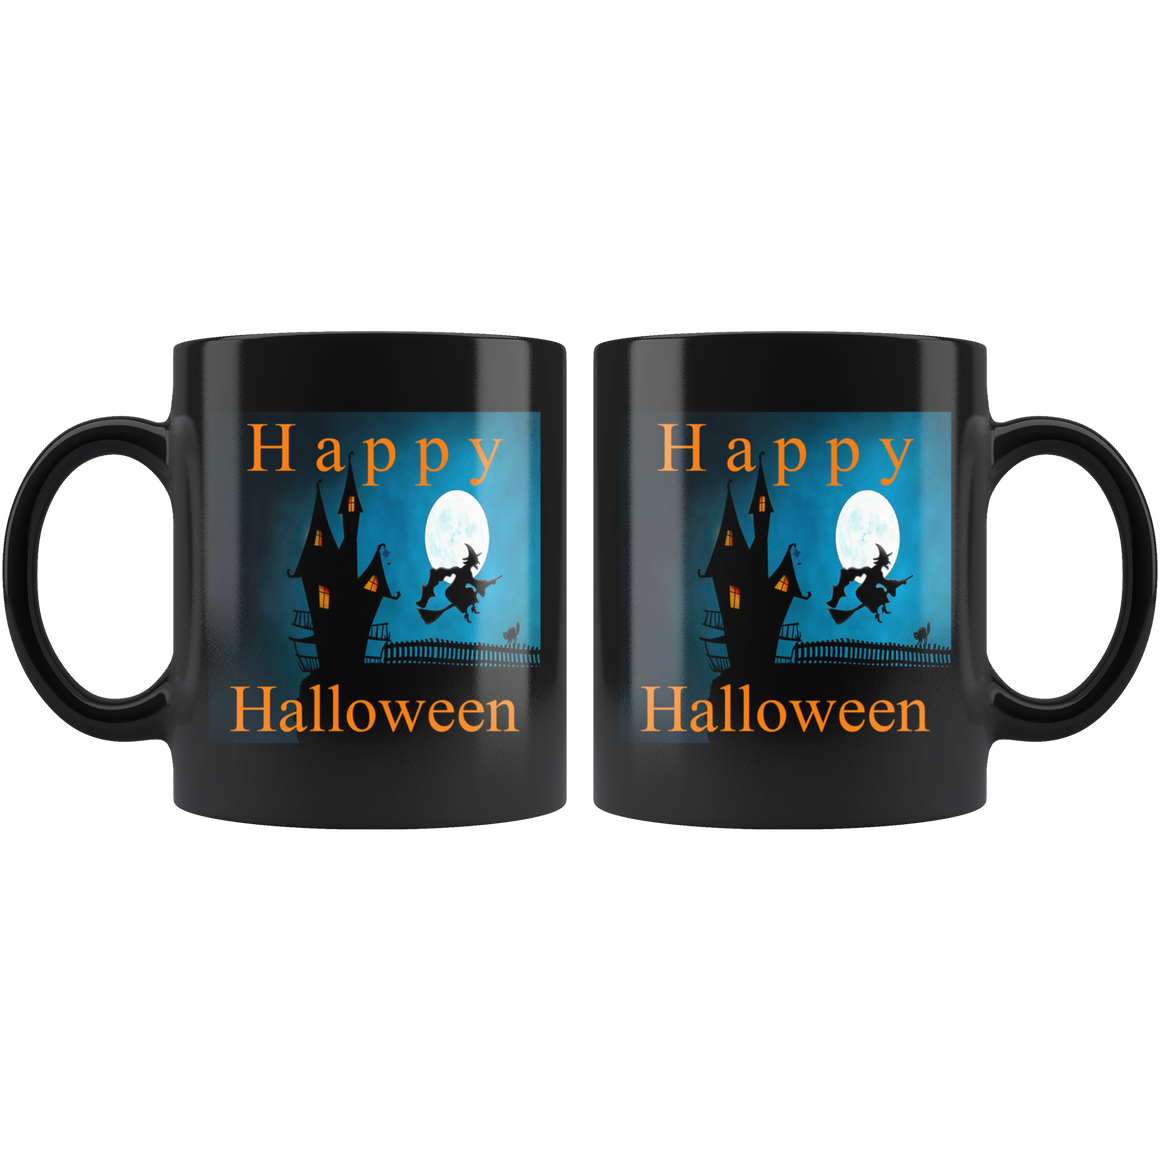 Cute Black 11oz Happy Halloween Coffee Tea Mug